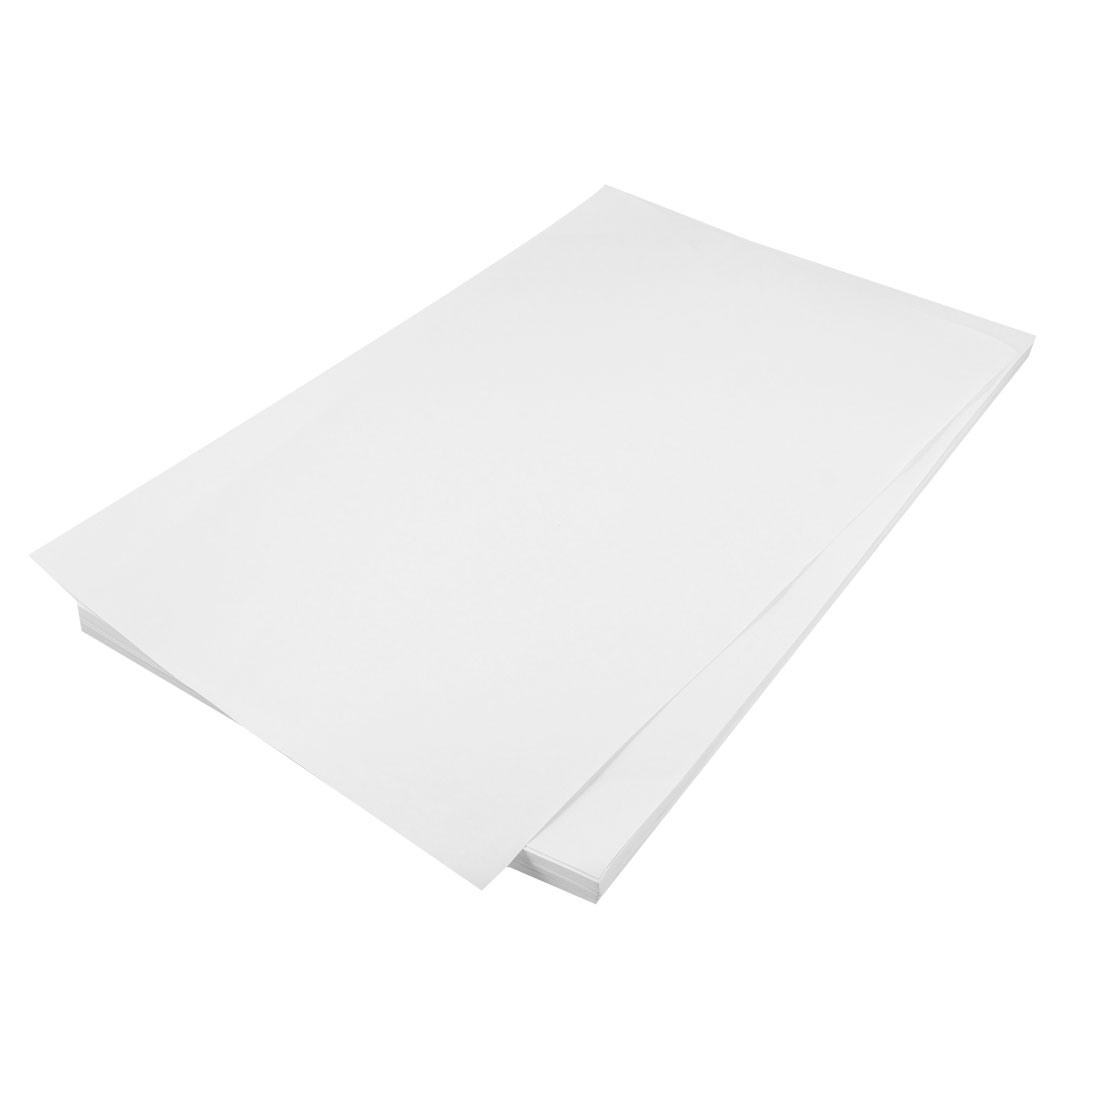 296 x 210mm A4 Smooth Printing Copy Office White Paper 100 Pcs